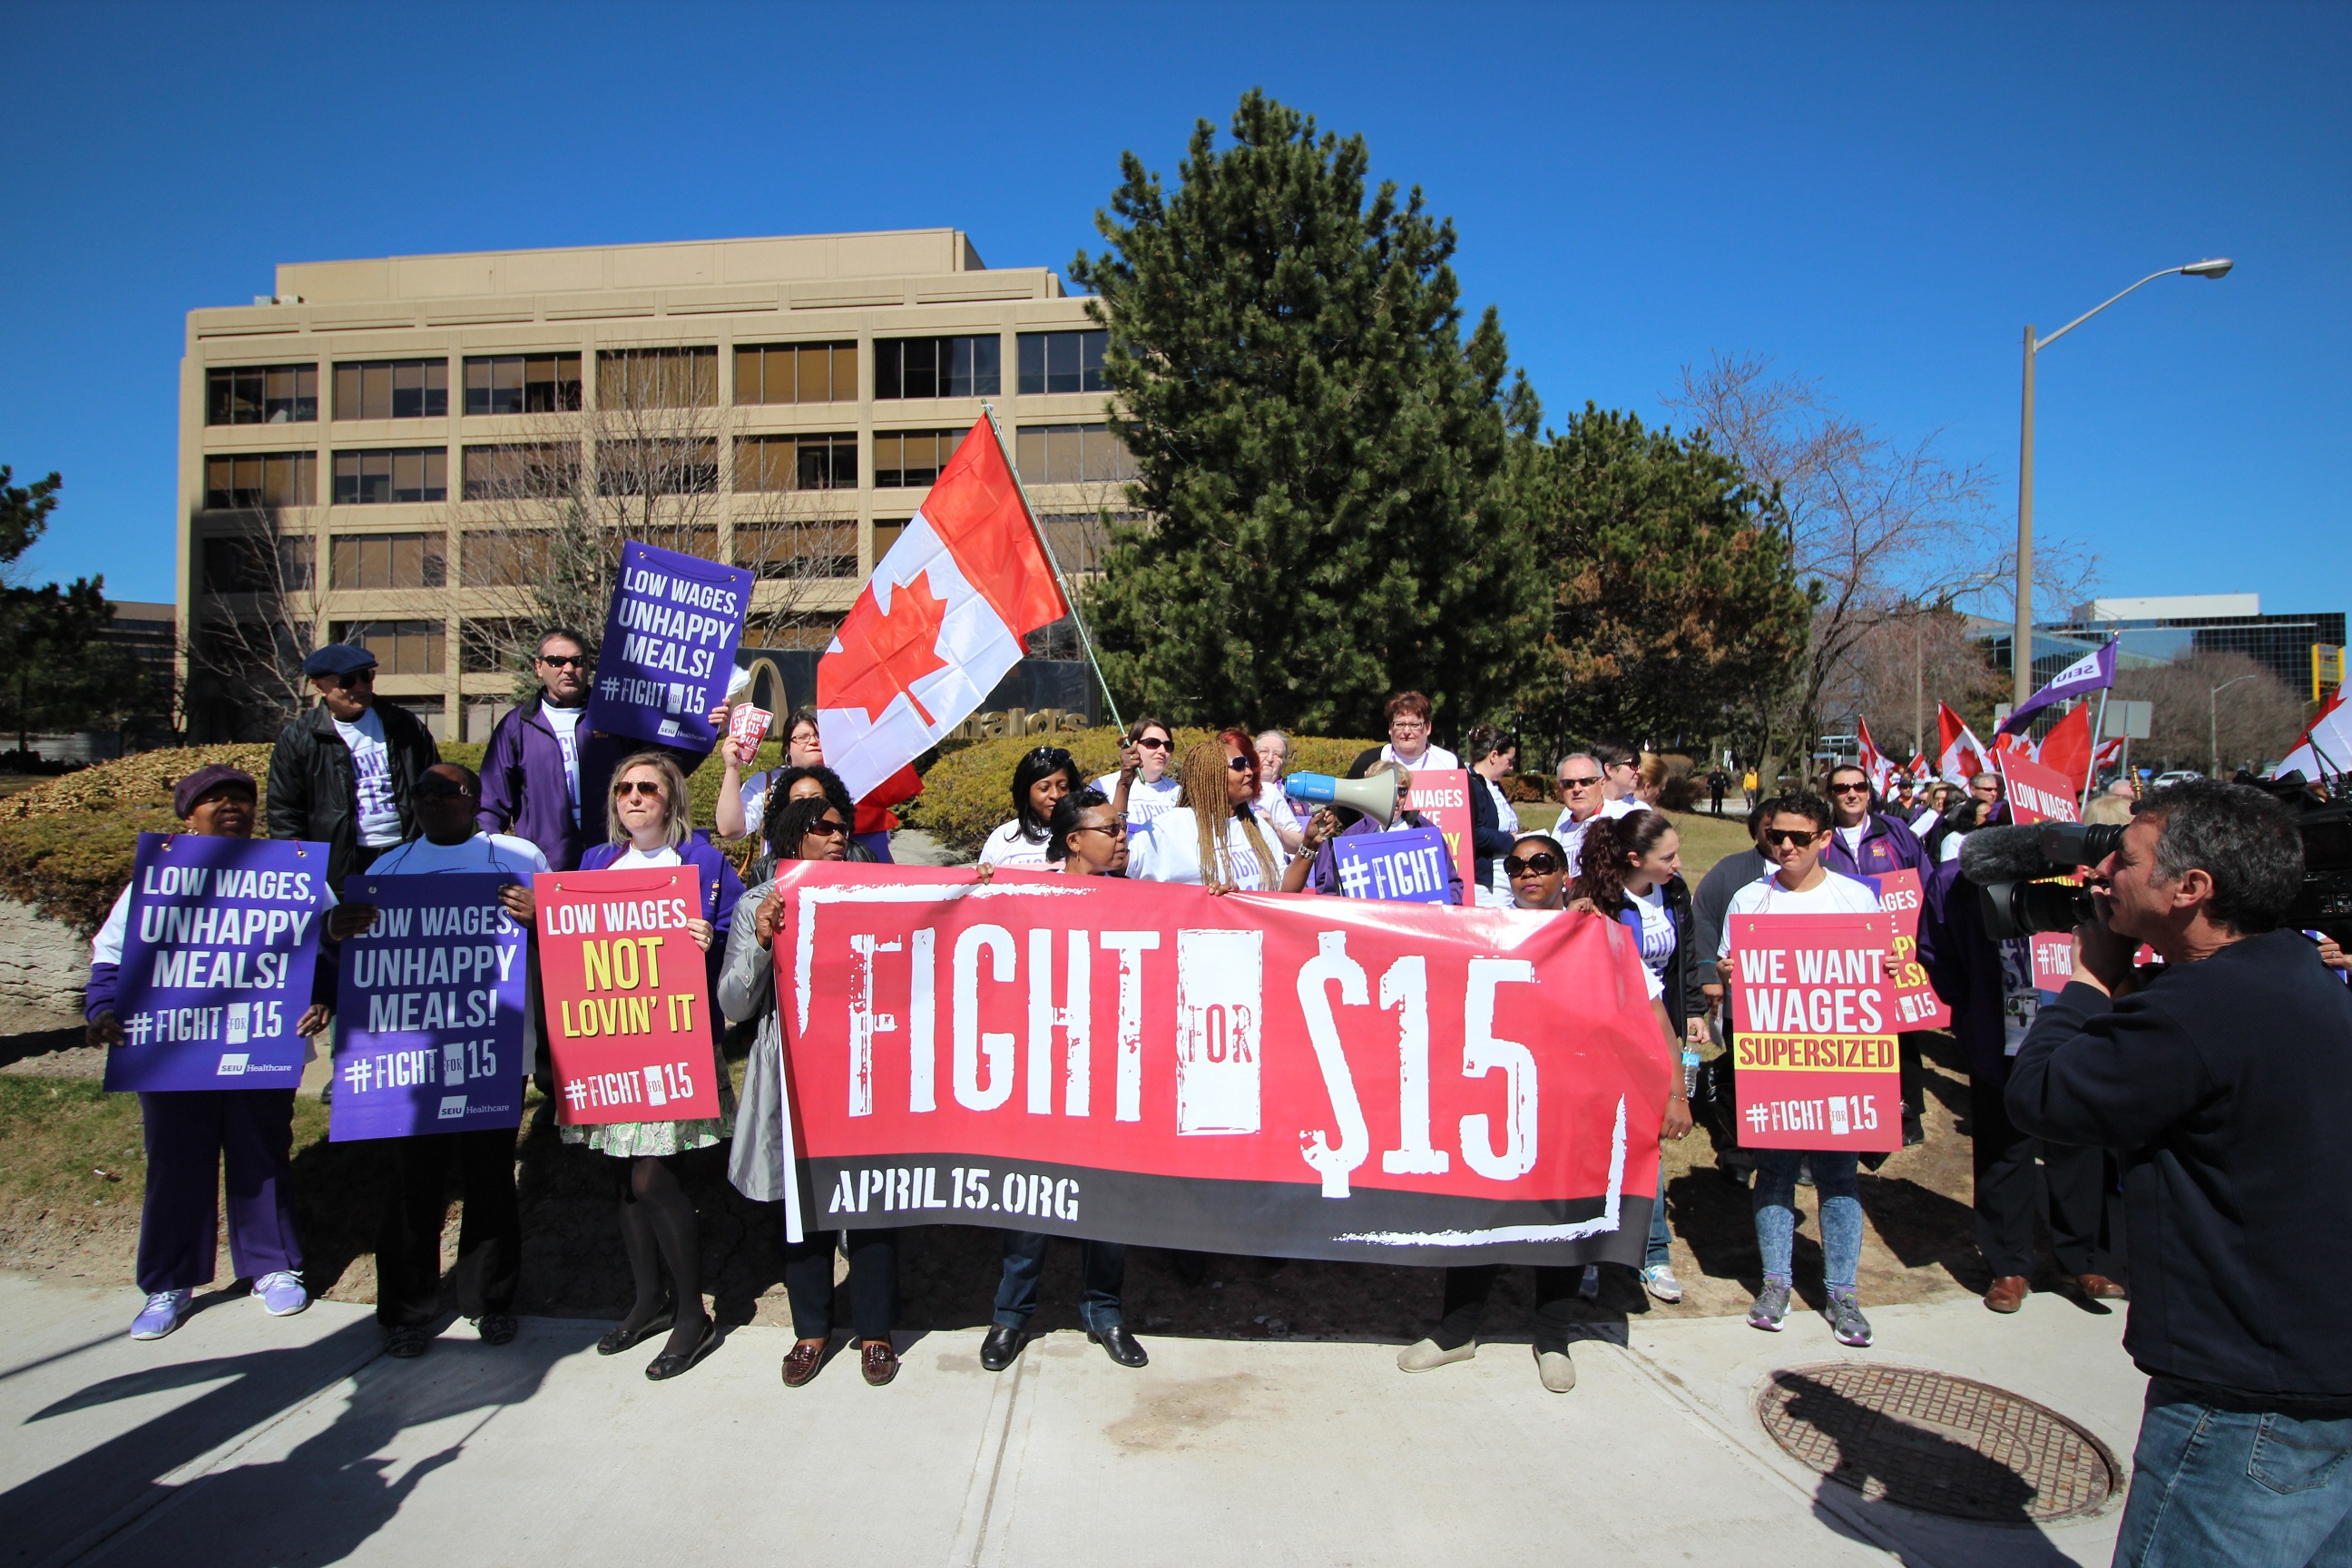 Fight for $15 in Toronto